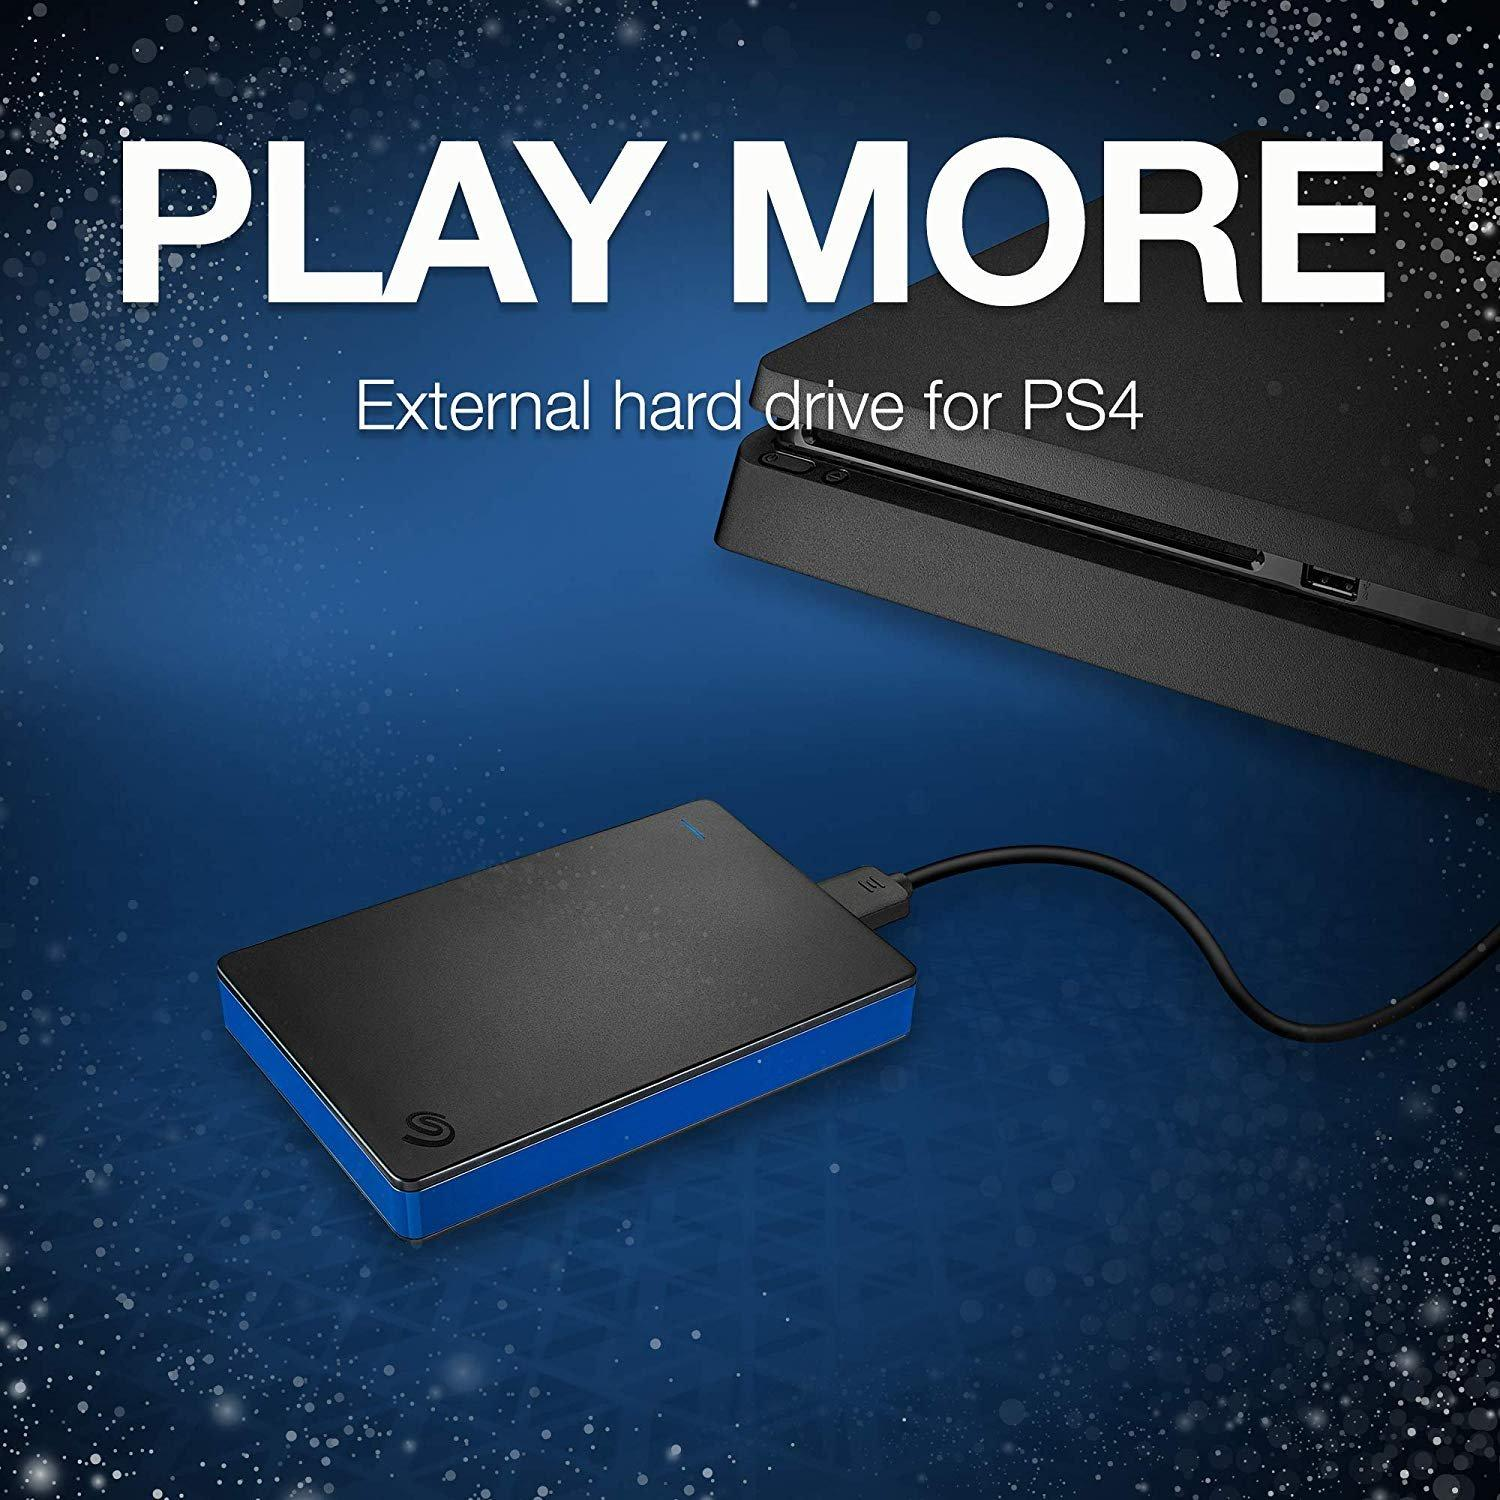 Playstation 4 External Game Drive 4tb Playstation 4